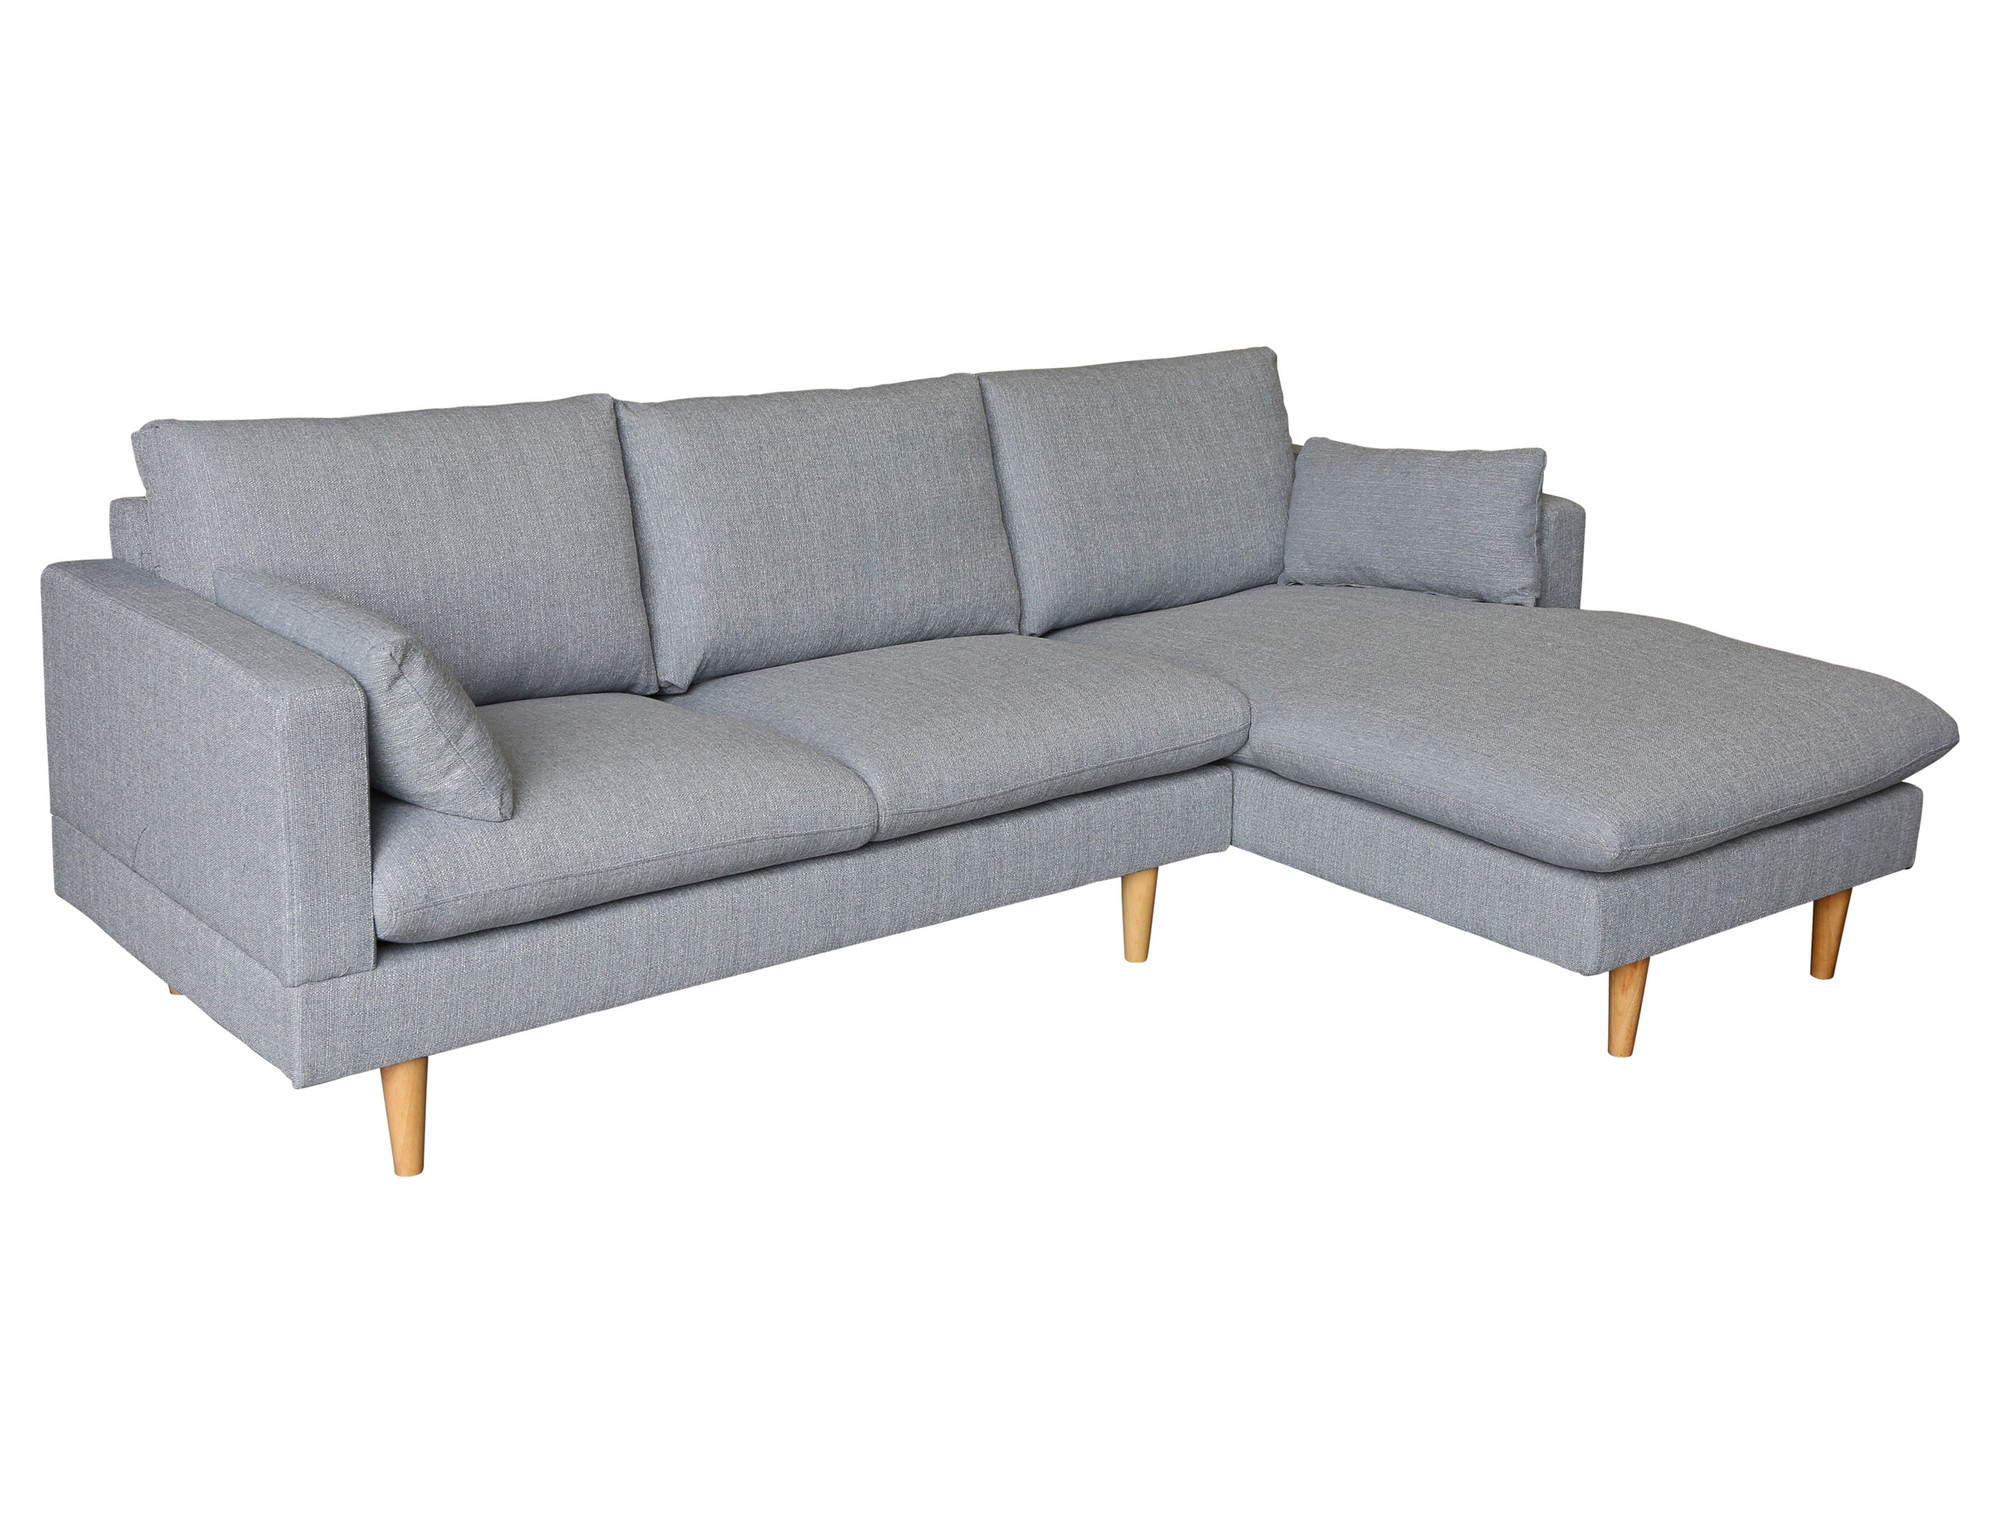 New light grey tia 2 seater sofa with right chaise for 2 seater lounge with chaise